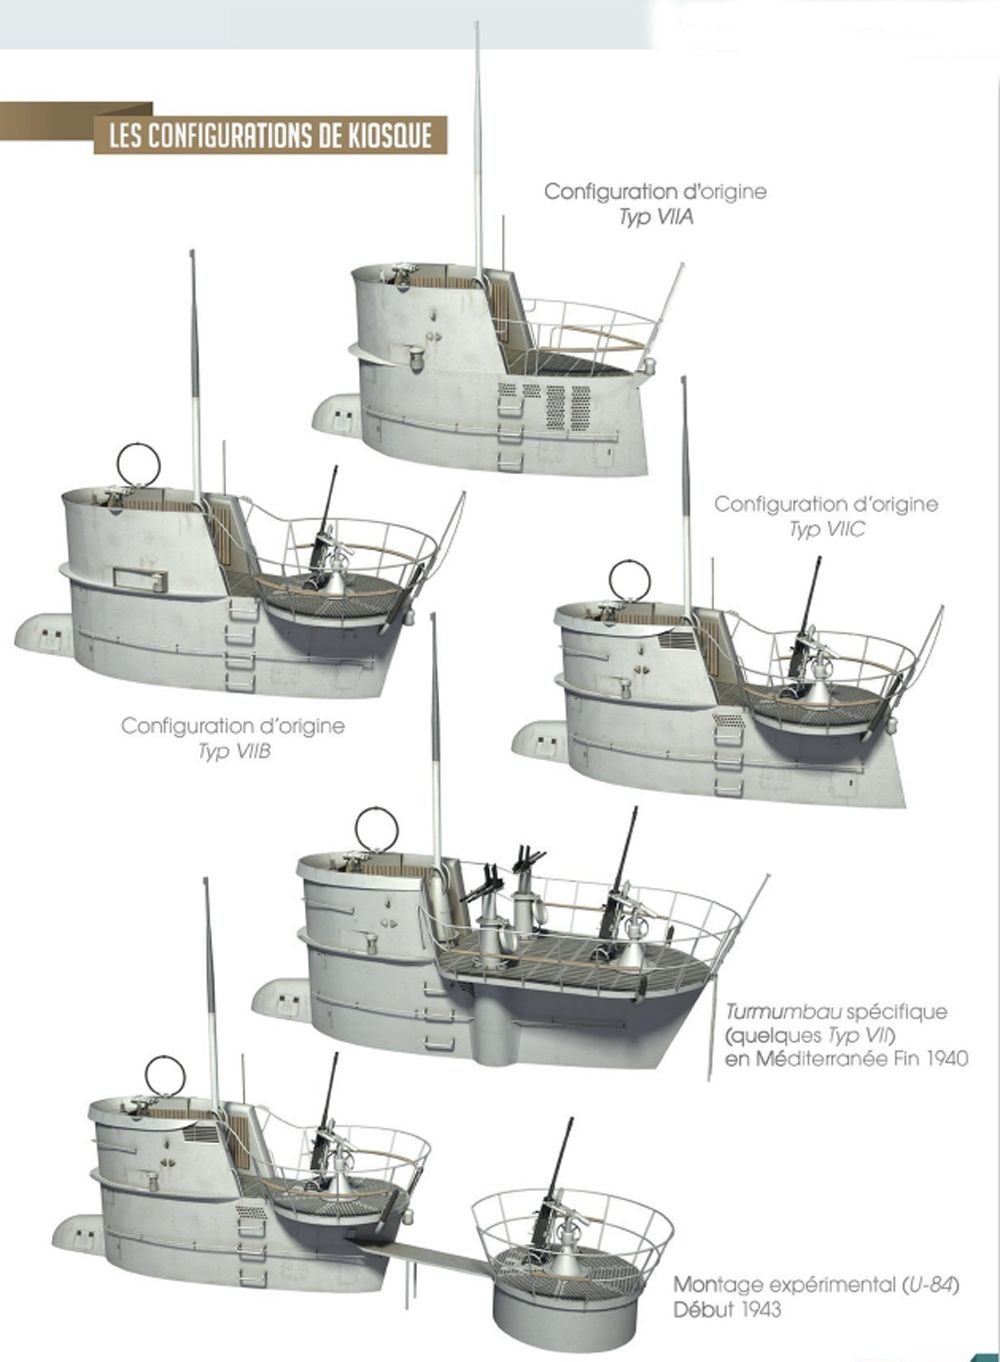 U Boat Diagram | Wiring Liry U Boat Schematics on